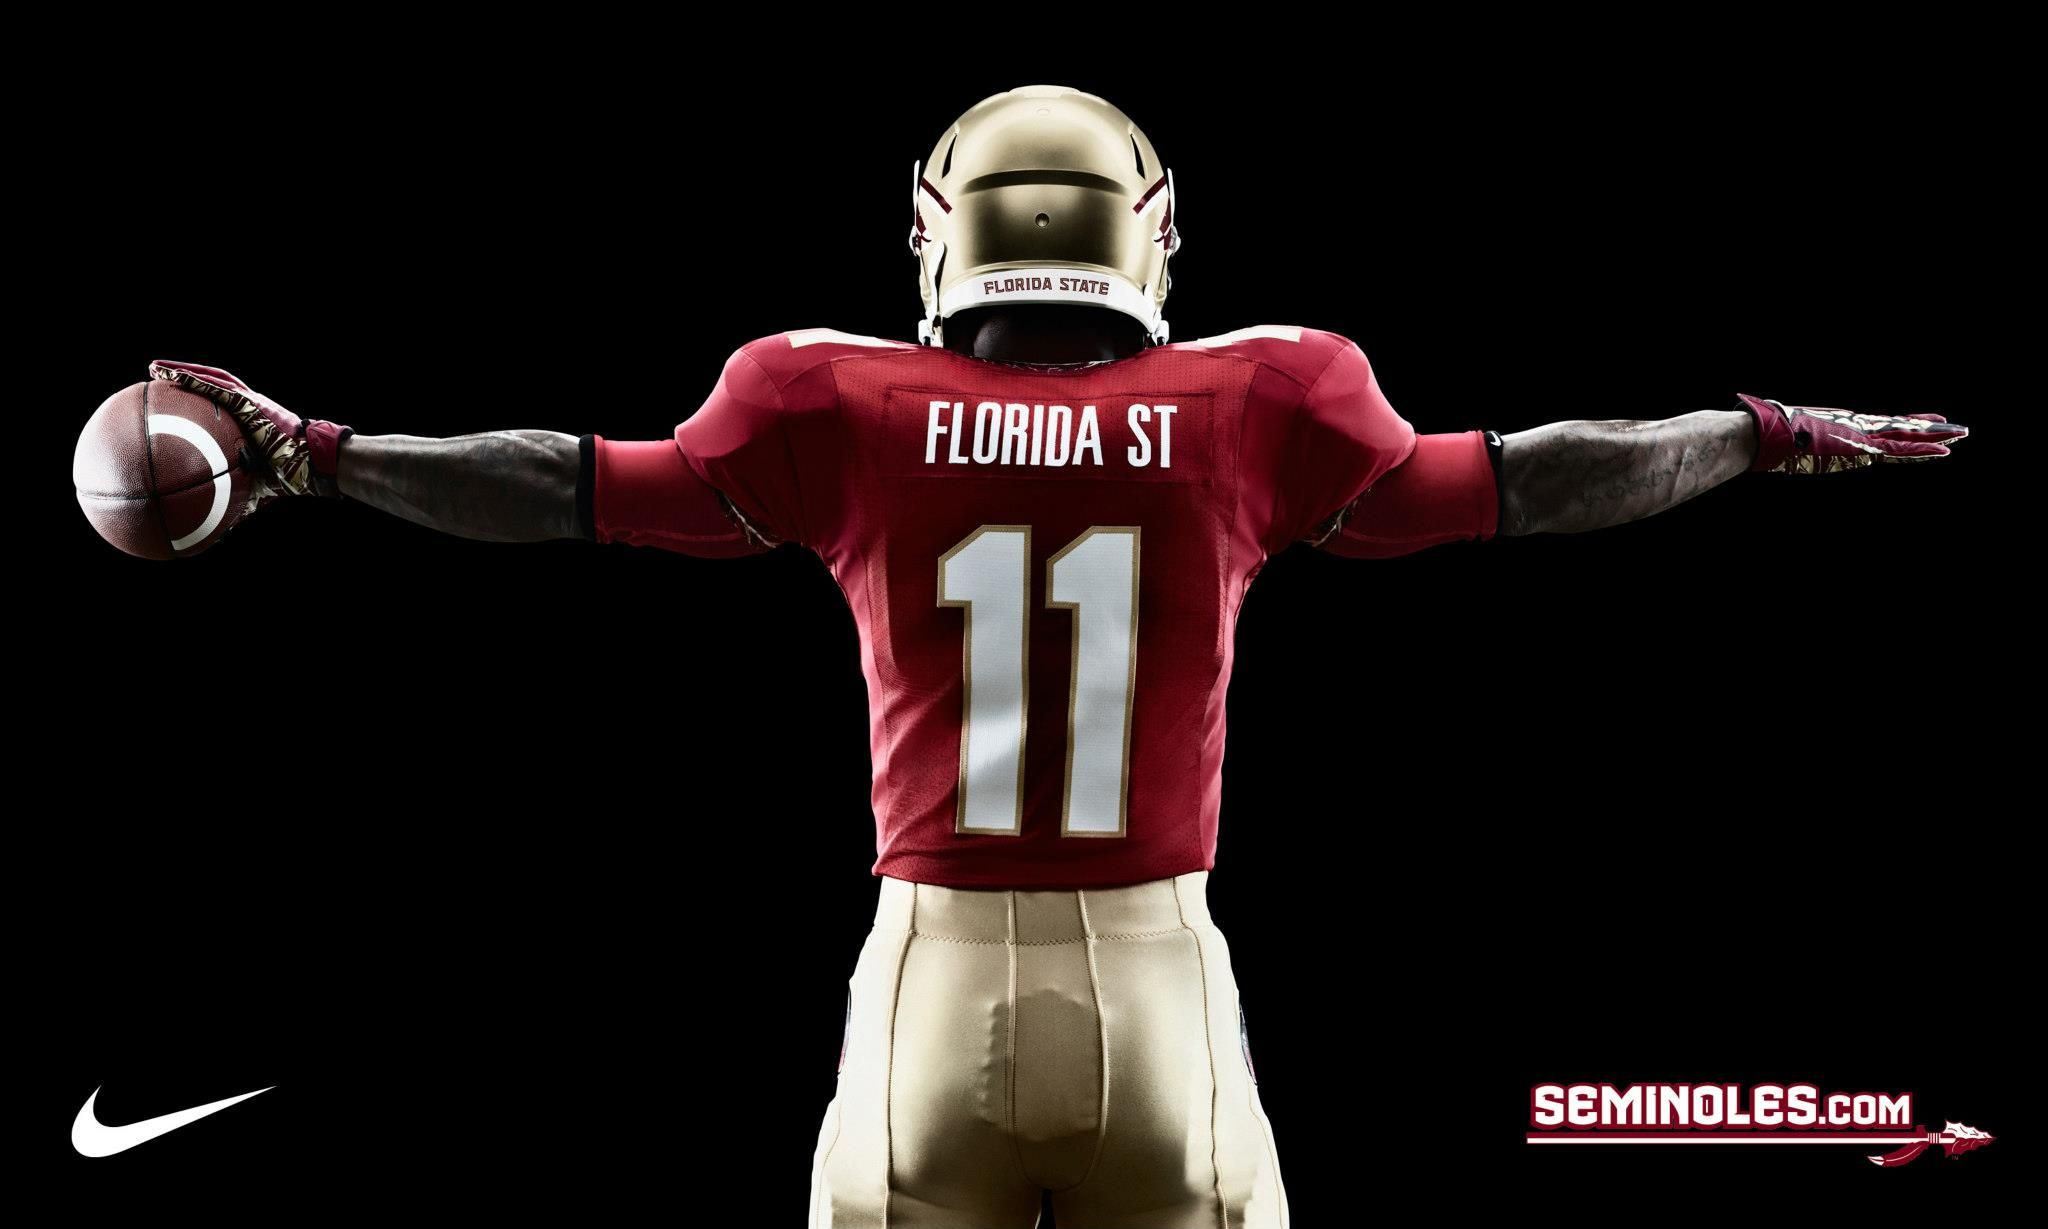 Fsu florida state nike pro combat football uniforms 2012 helmet fsu florida state nike pro combat football uniforms voltagebd